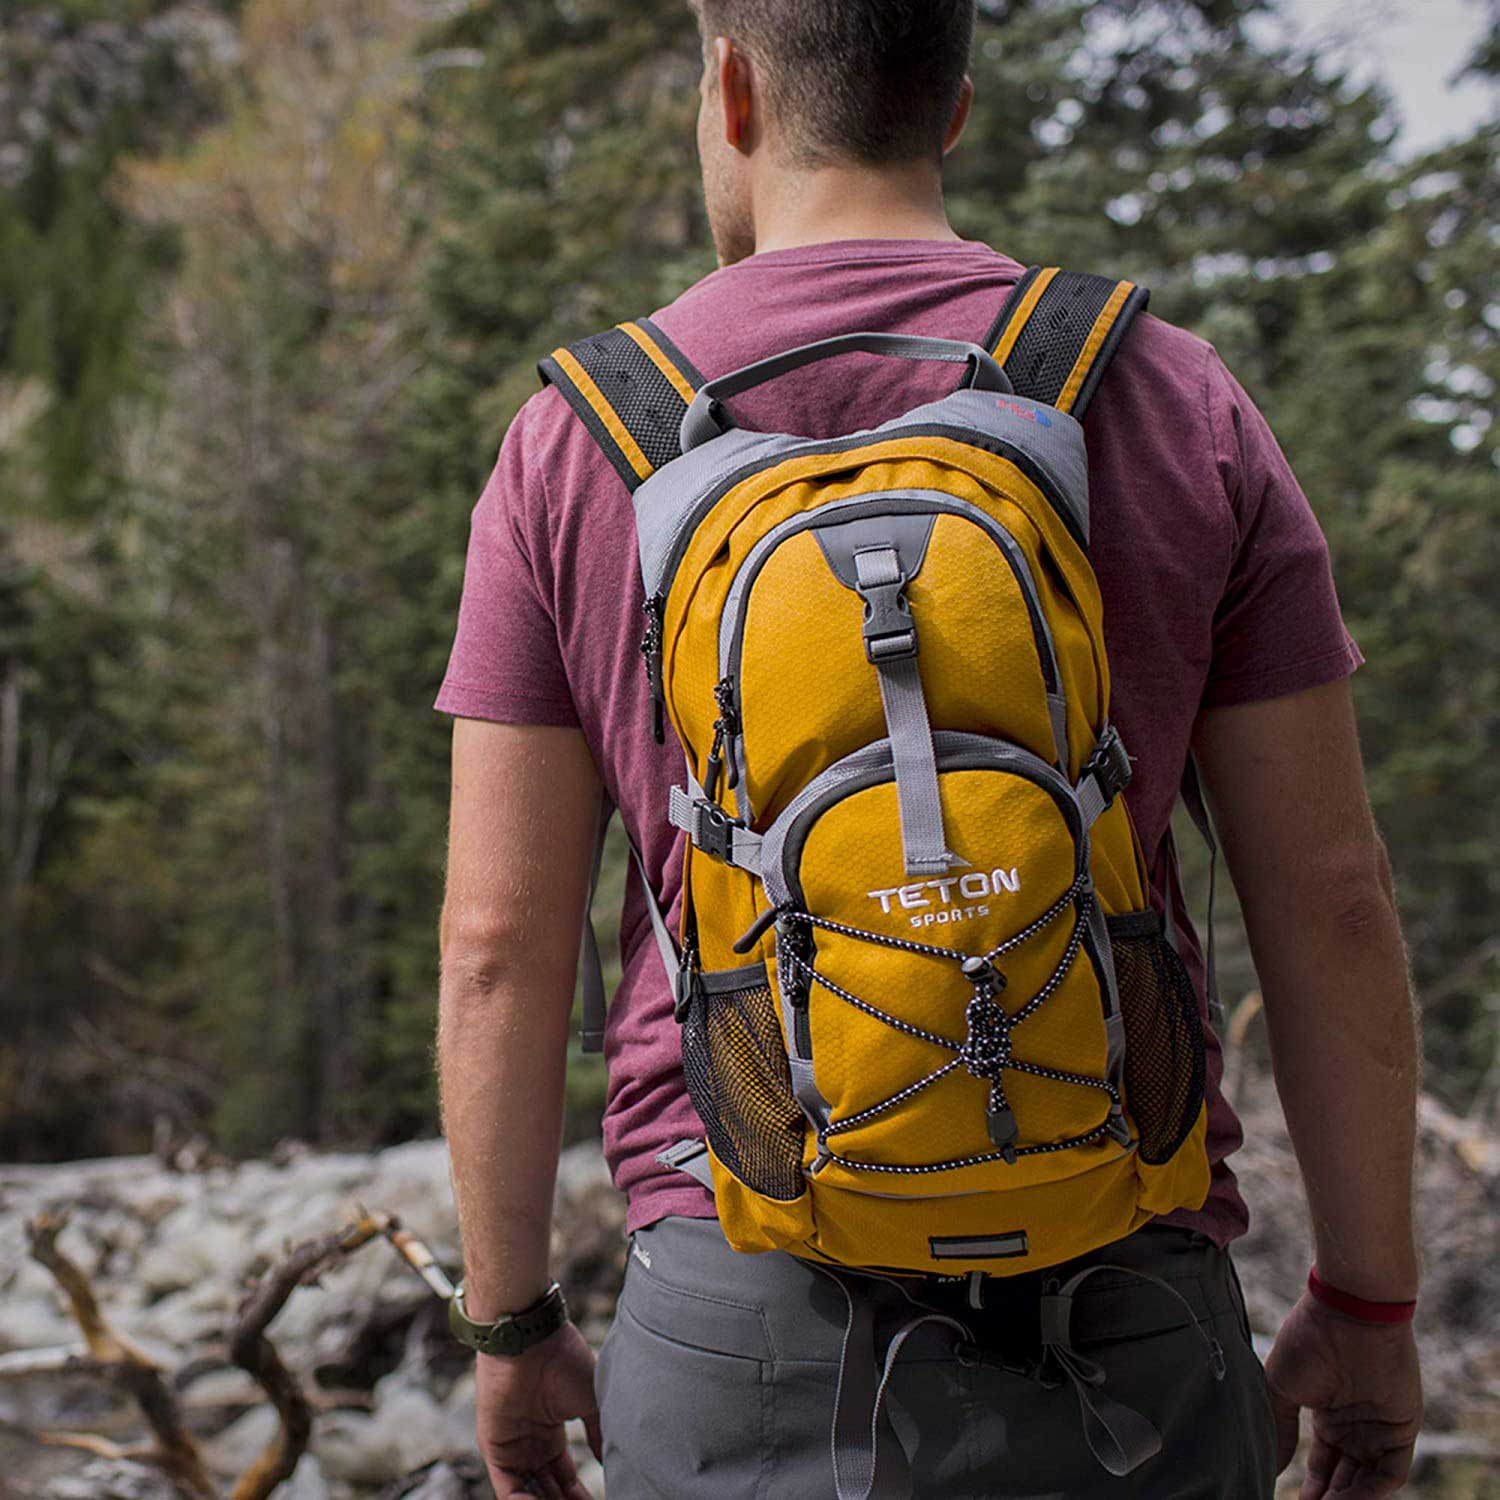 Guy wearing yellow backpack on a hike